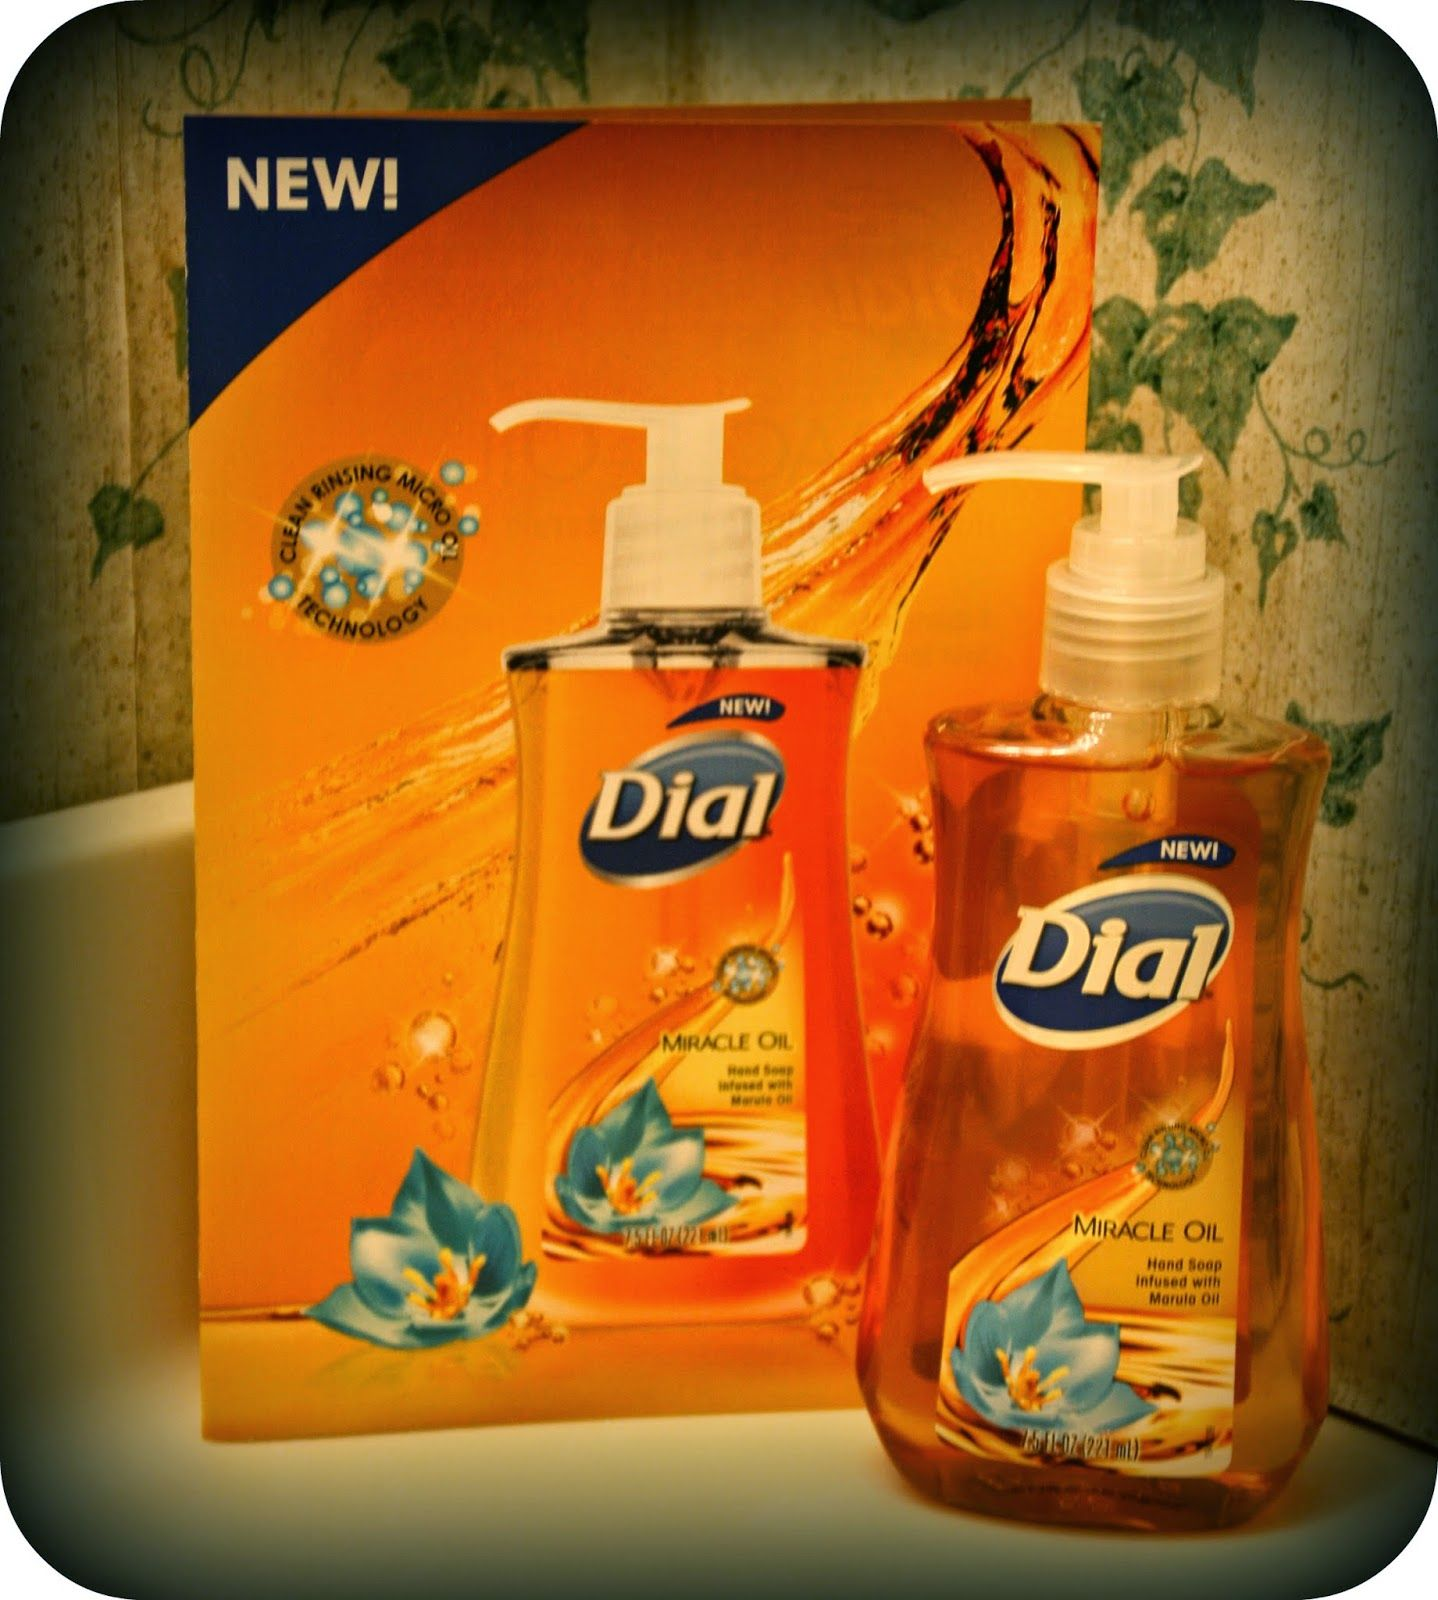 Dial miracle oil hand soap review giveaway hand soap